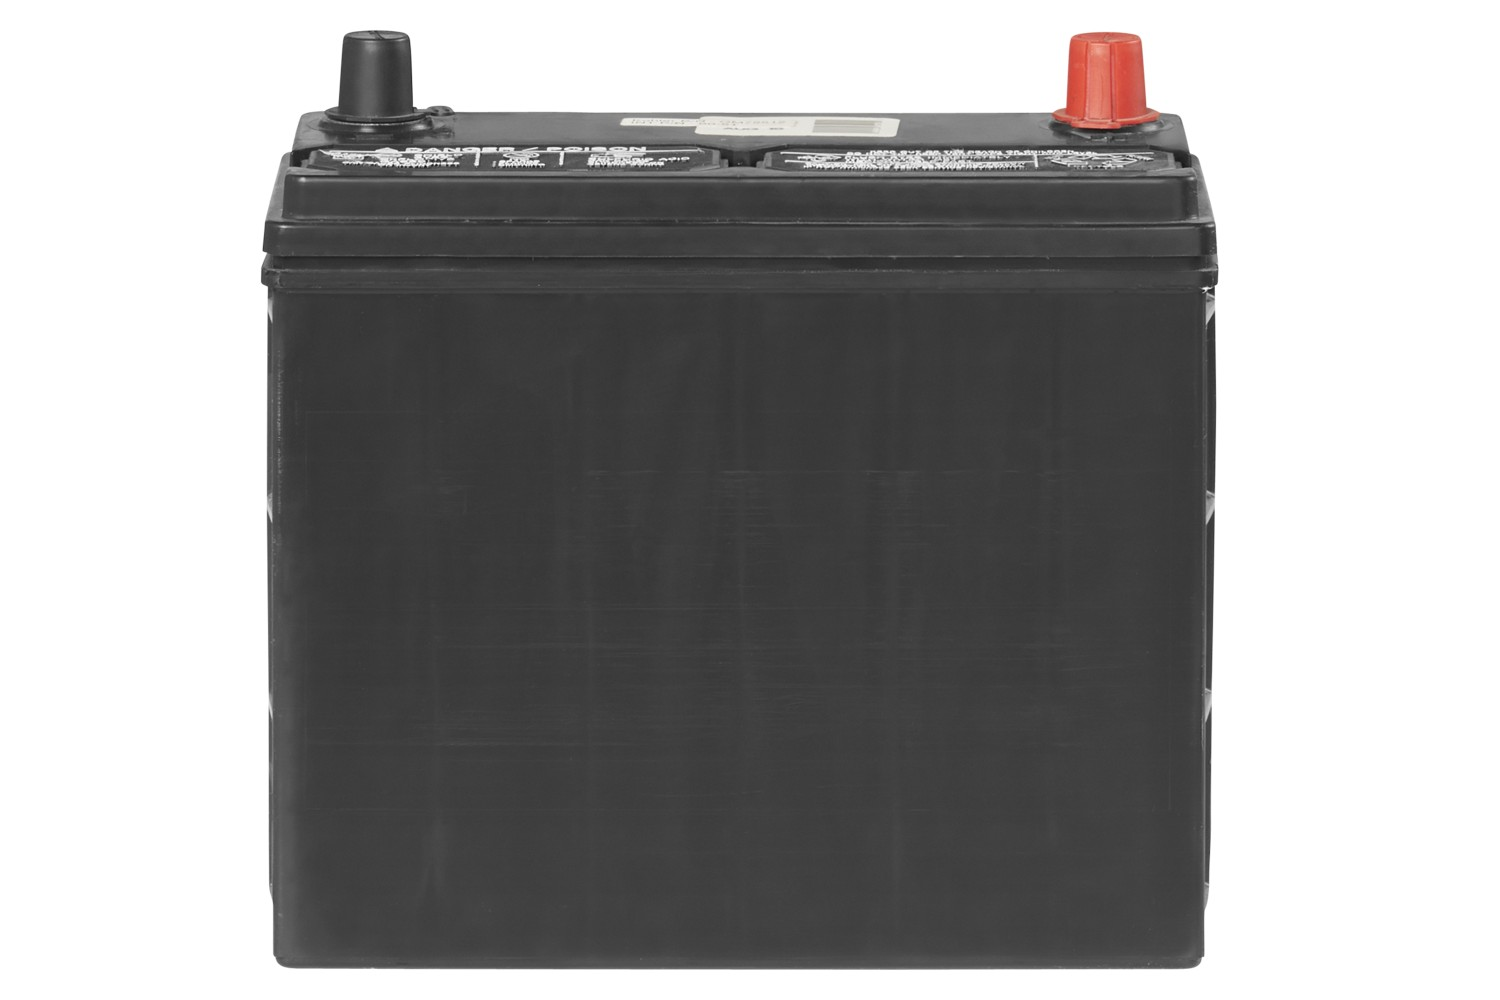 Battery: Group 51, 6VSG, 8/10/12RESV(L), 14/20 kW